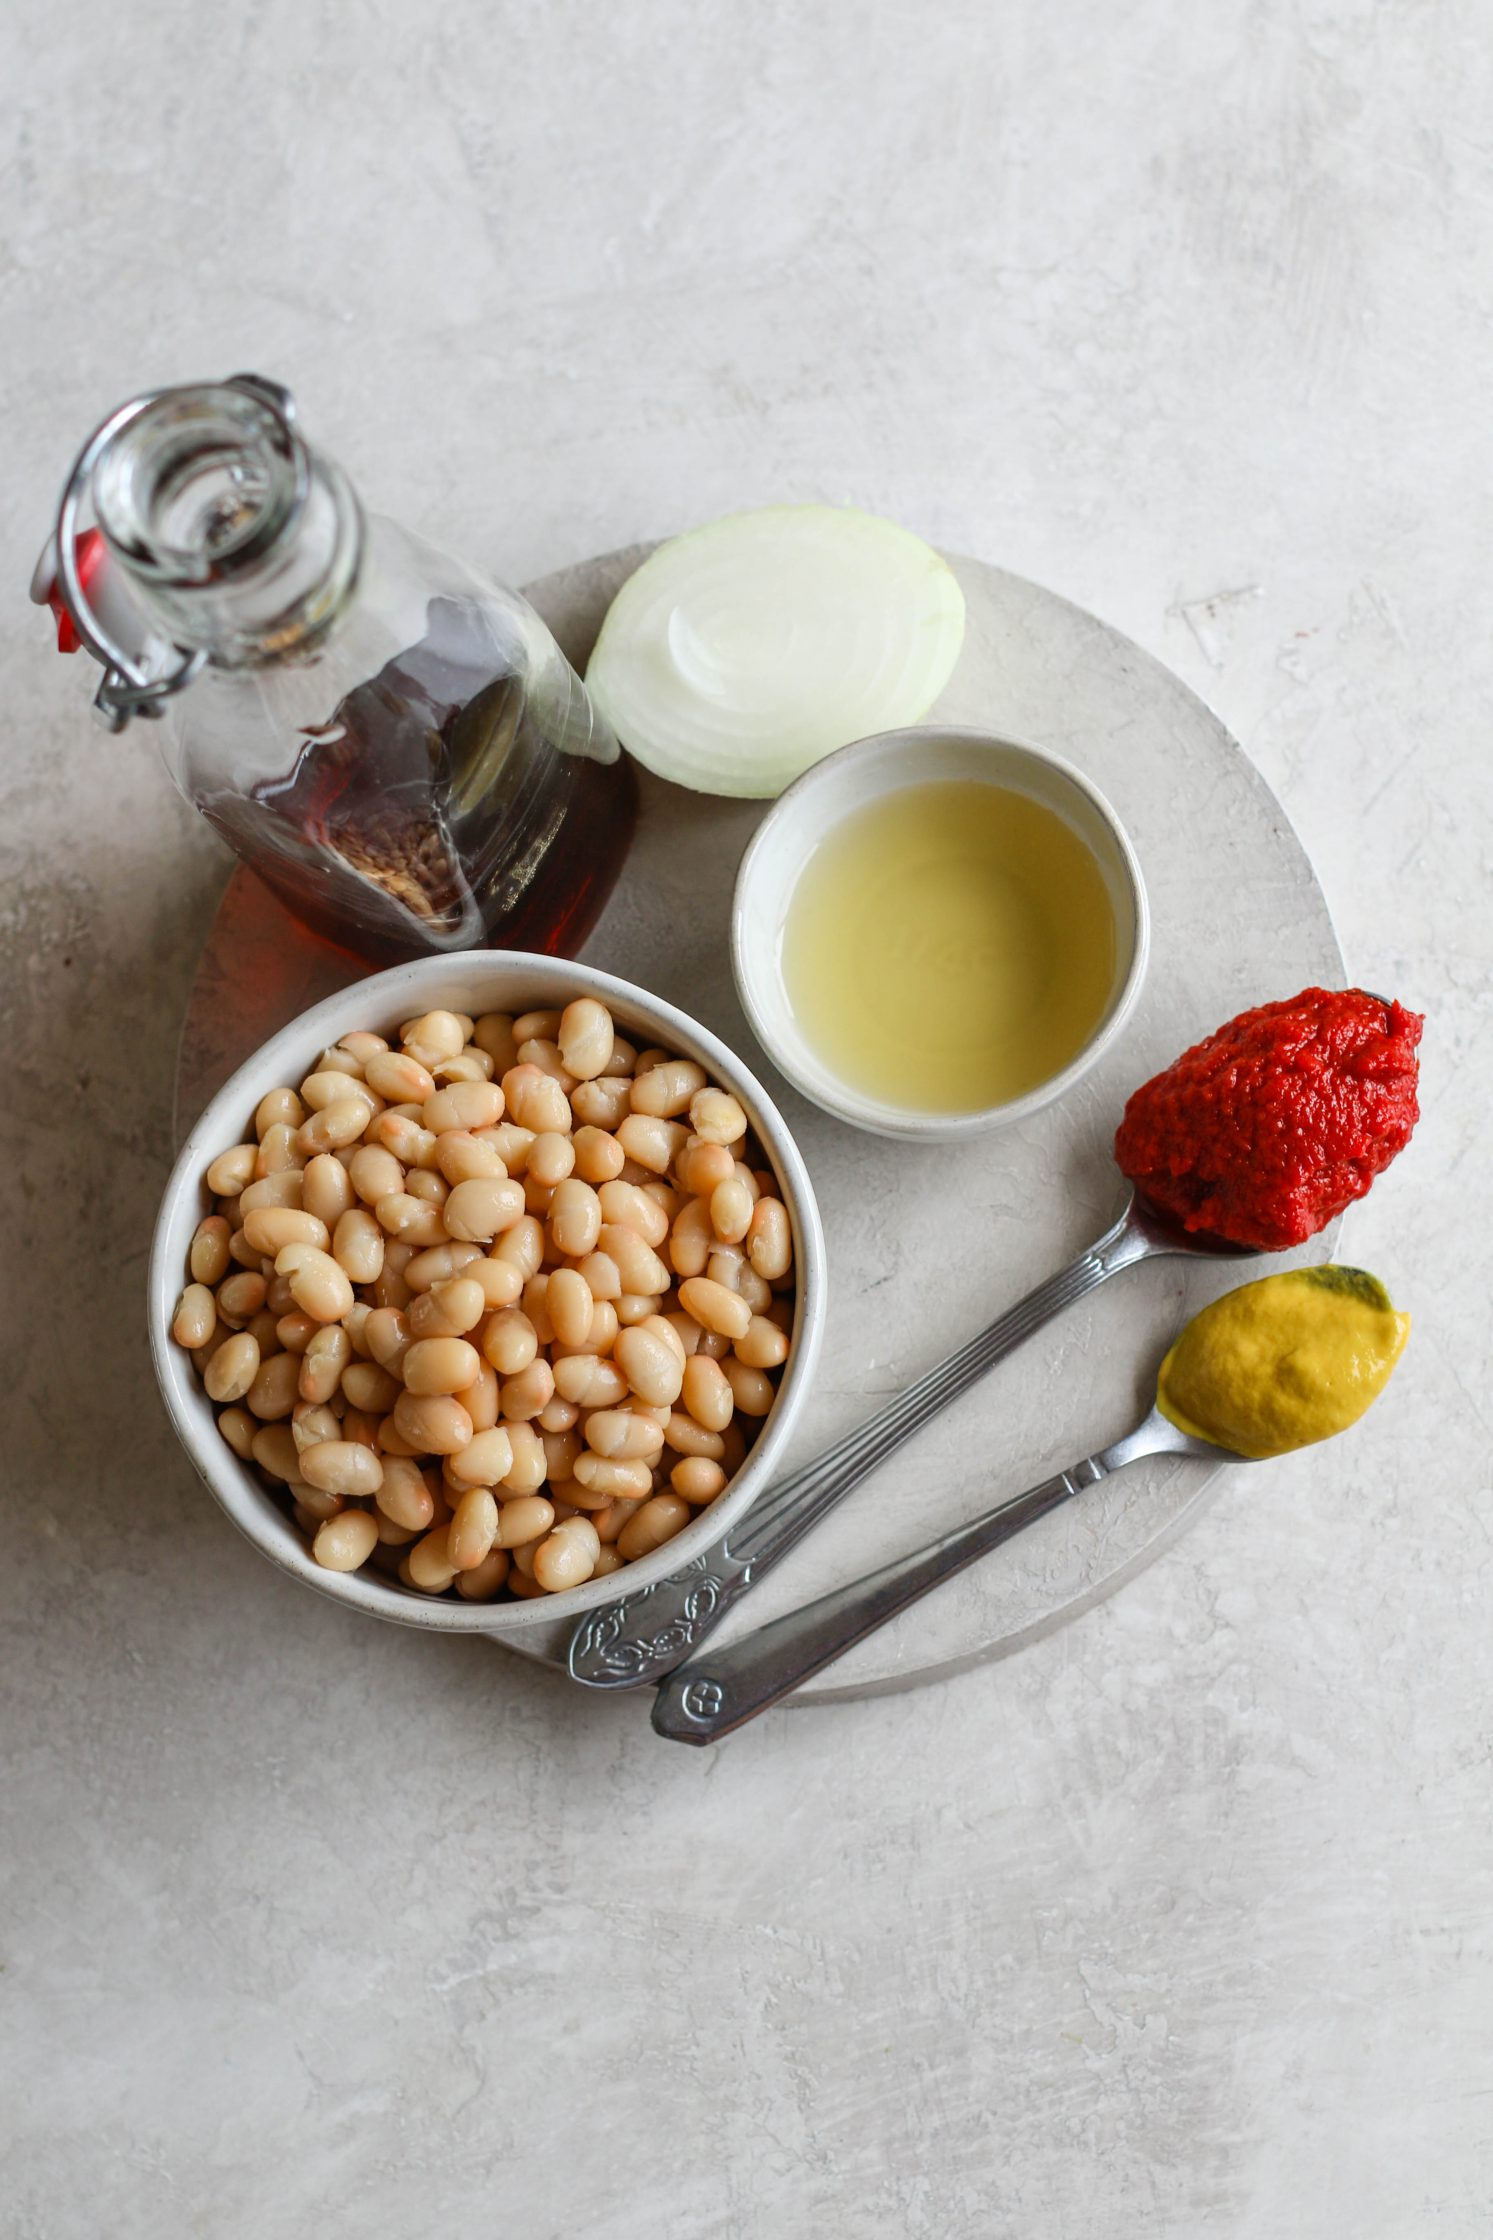 Vegan Maple Baked Beans Ingredients